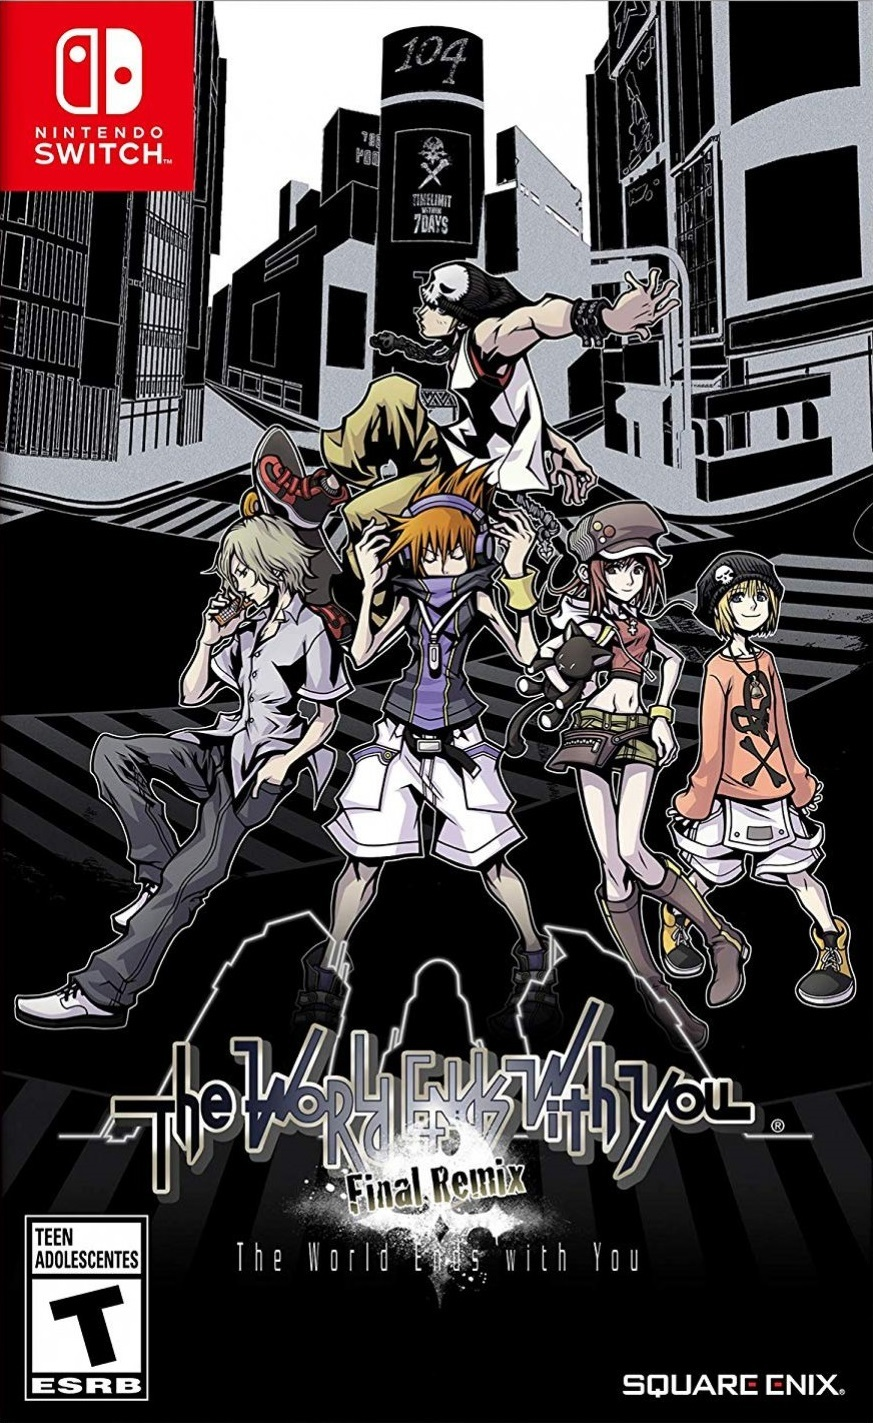 the-world-ends-with-you-final-remix-551491.9.jpg